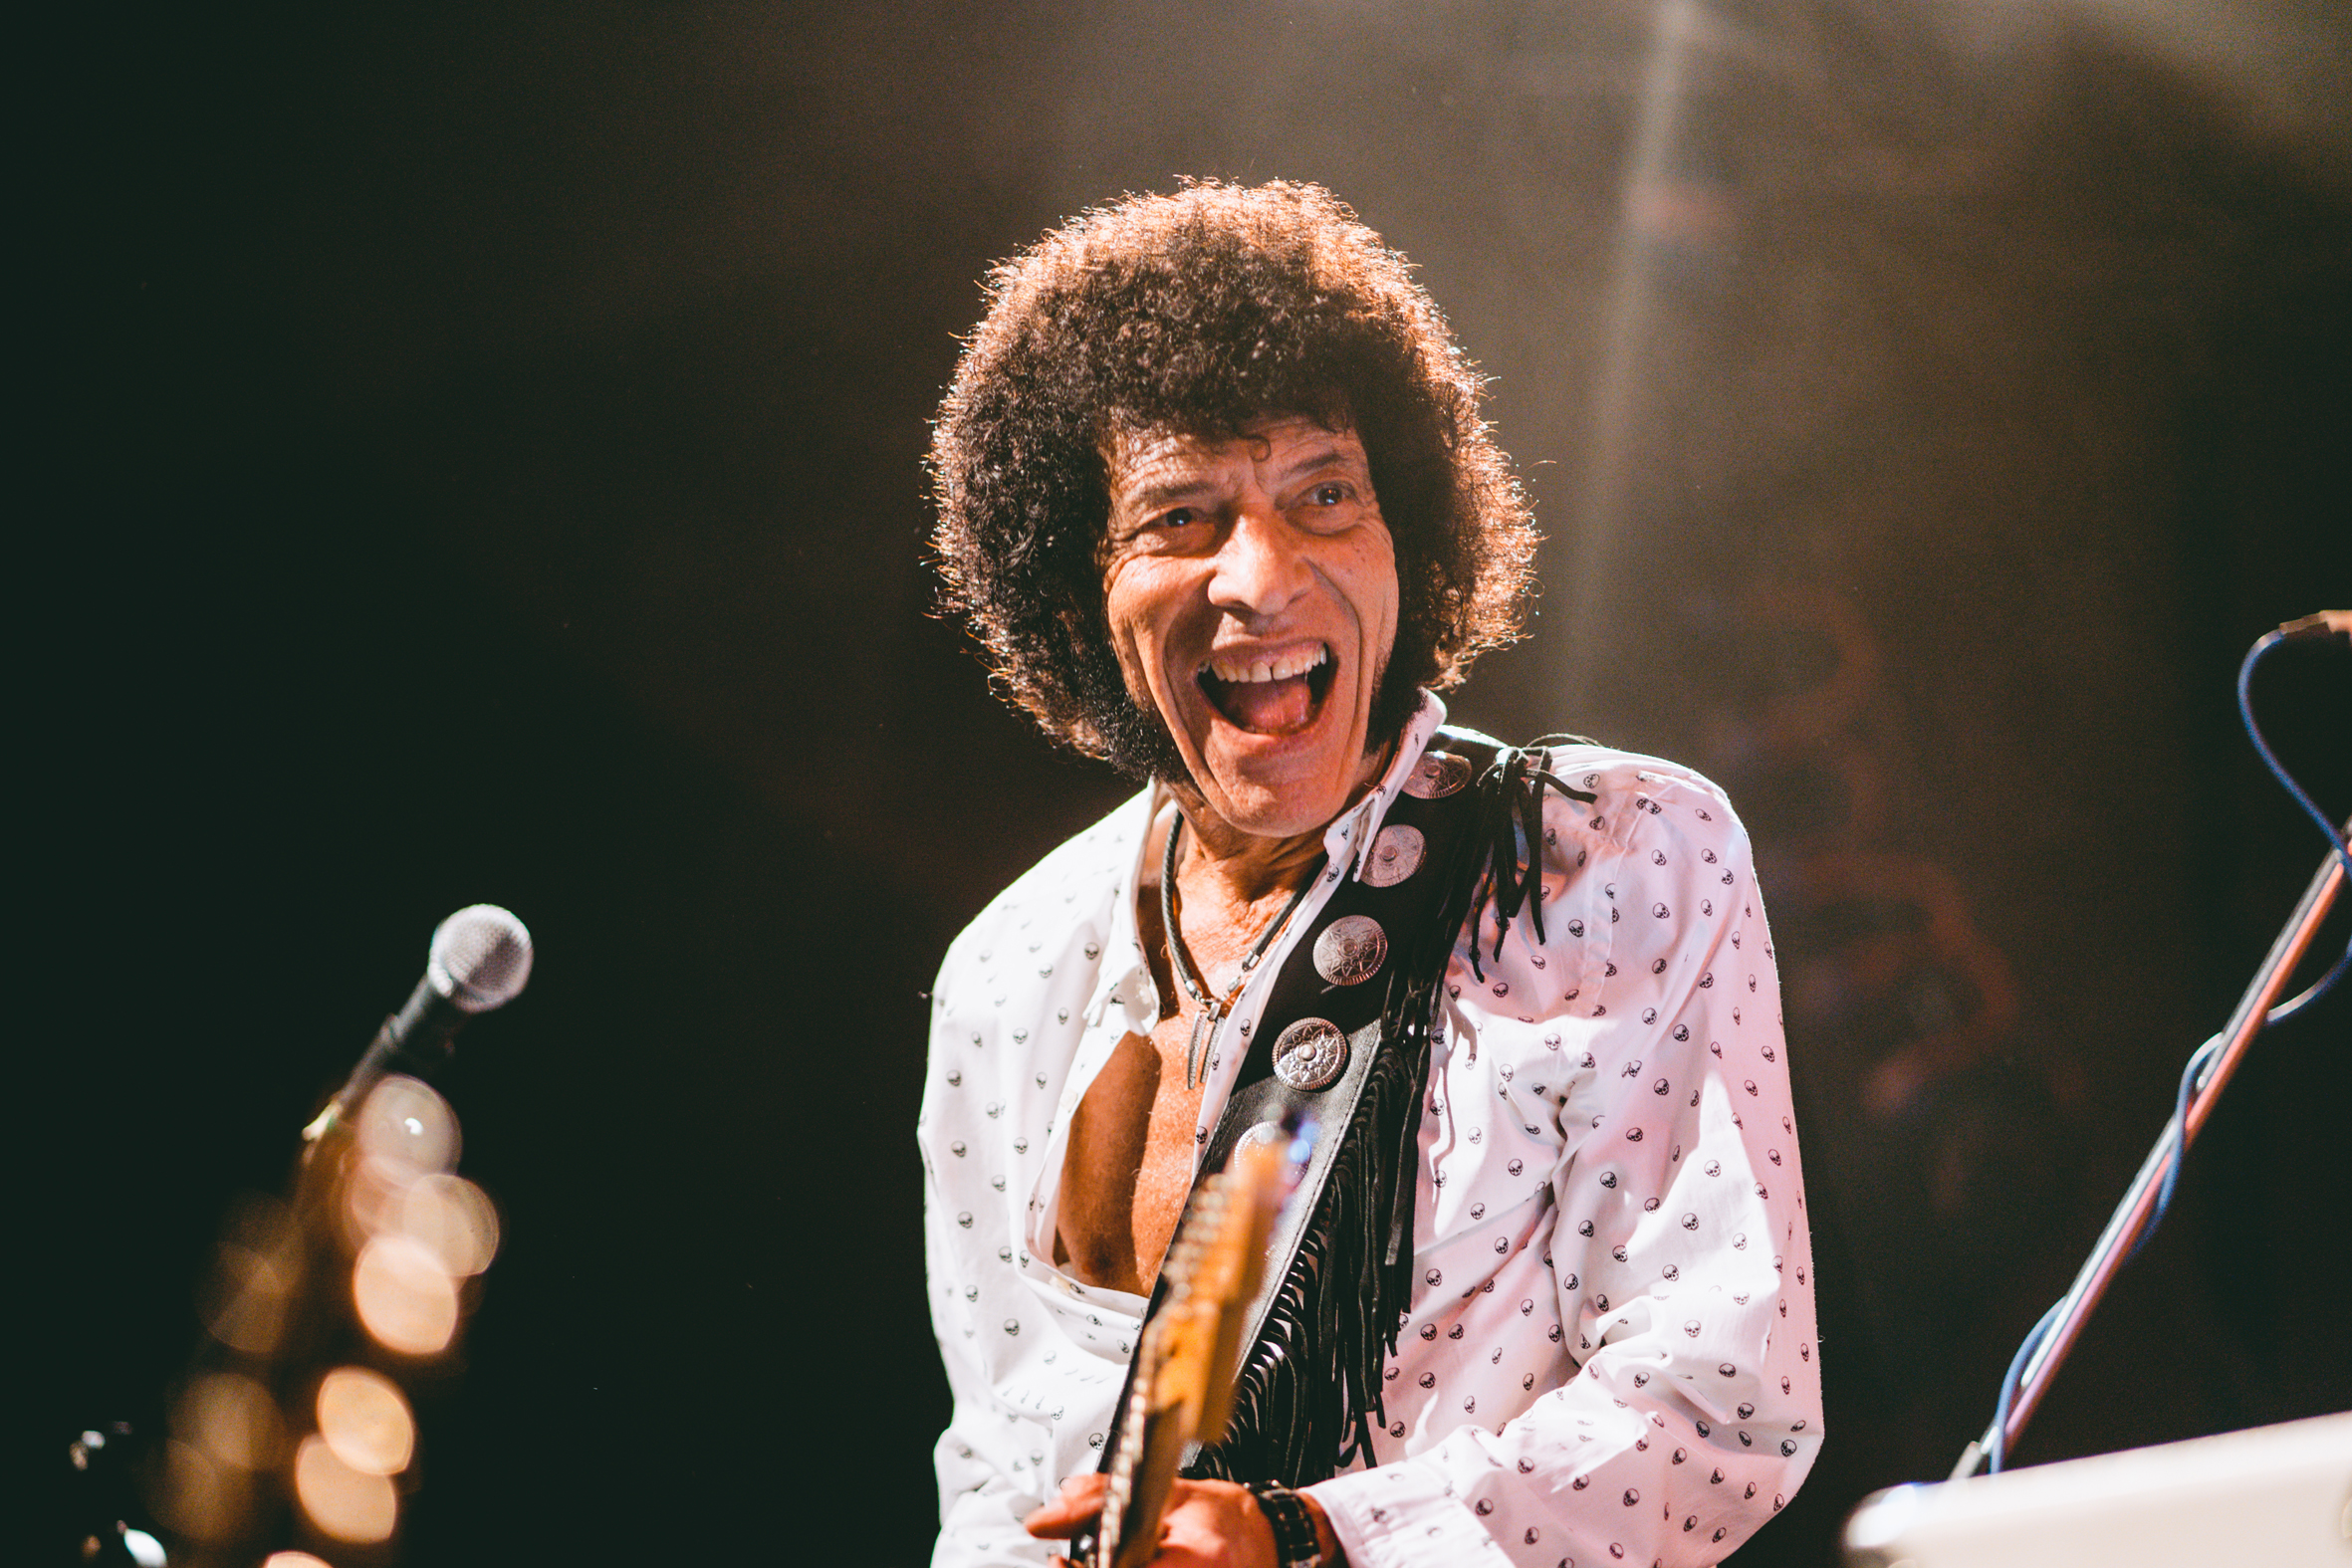 One Media secures exclusive rights to over 300 Ray Dorset recordings